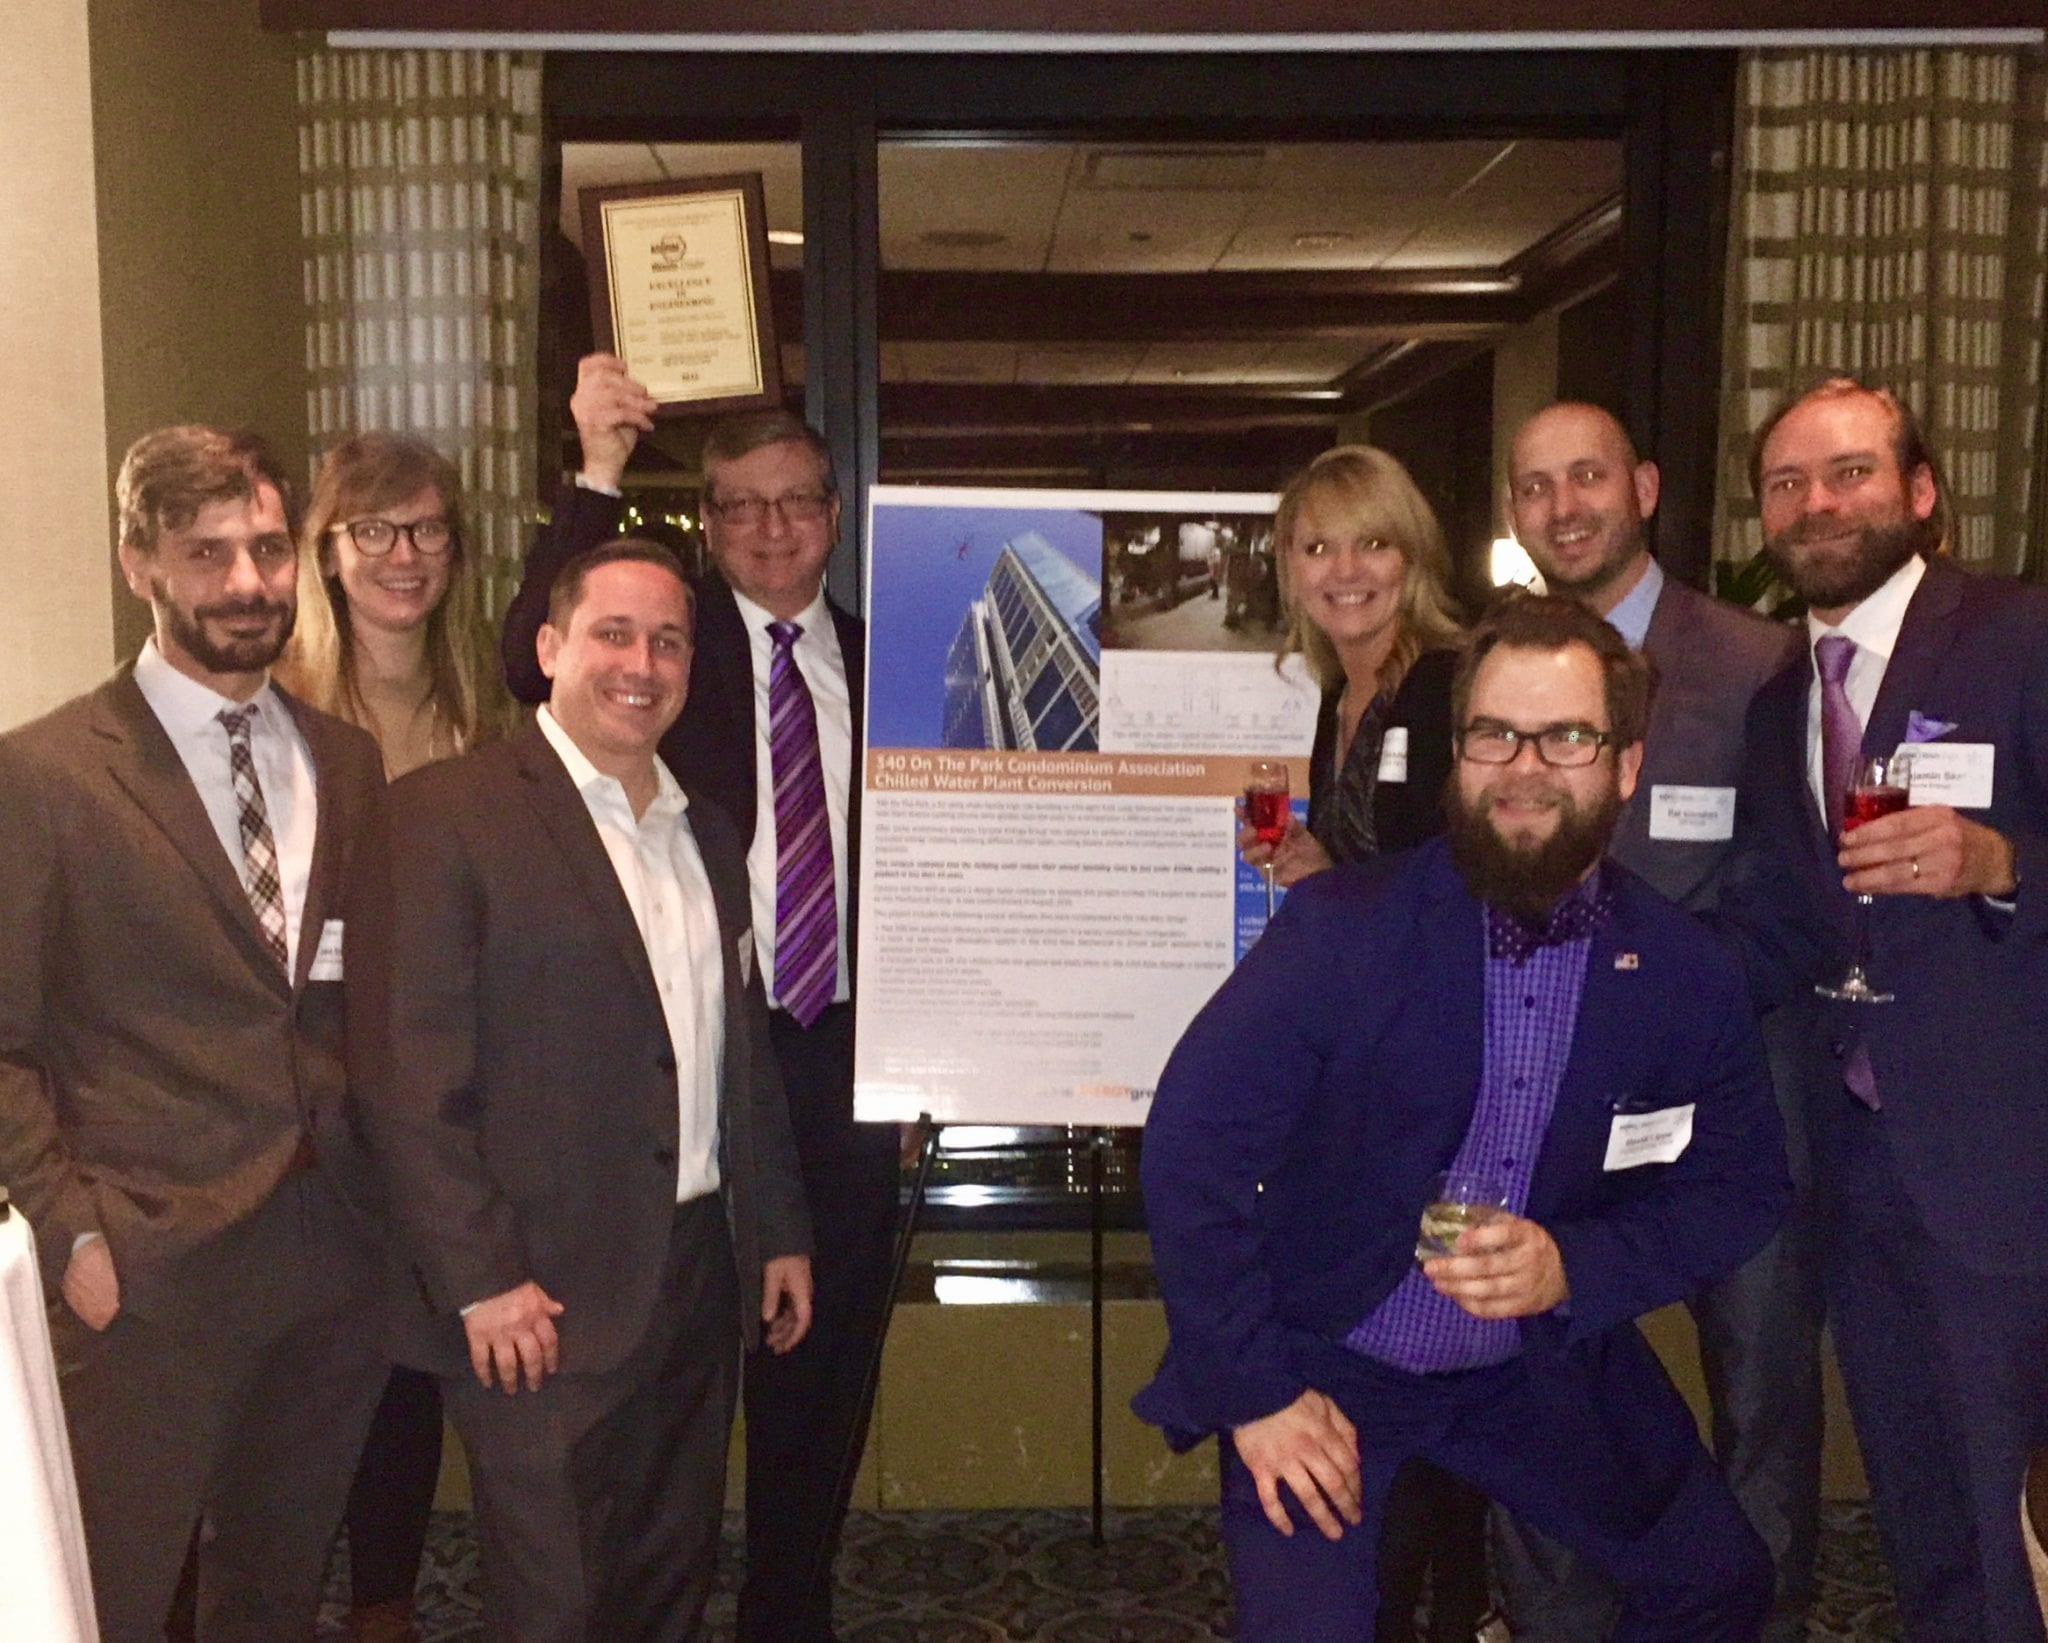 cyclone-energy-group-award-from-ashrae-illinois